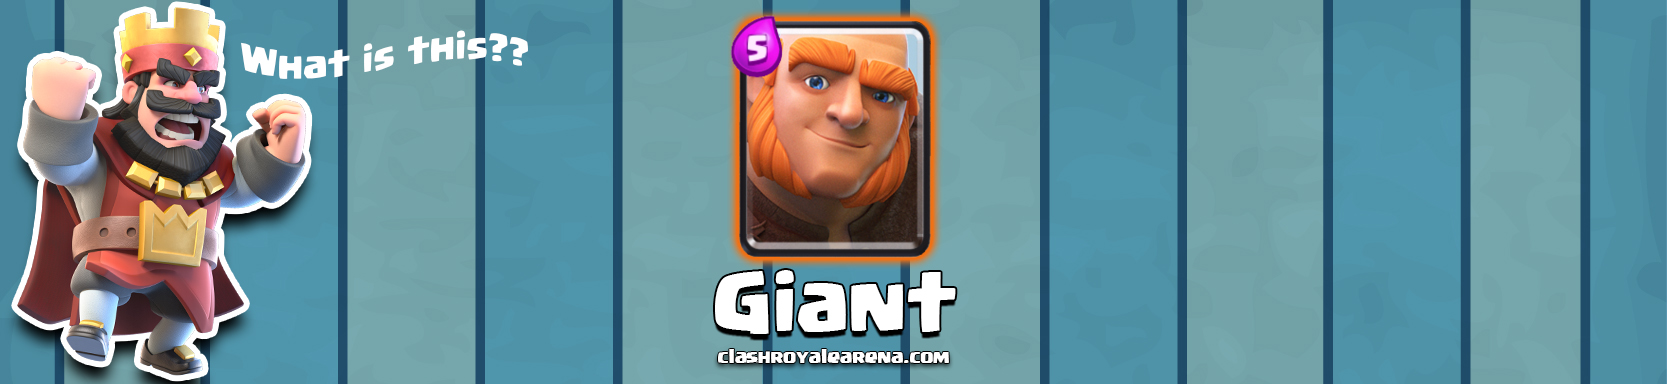 giant-clash-royale-card